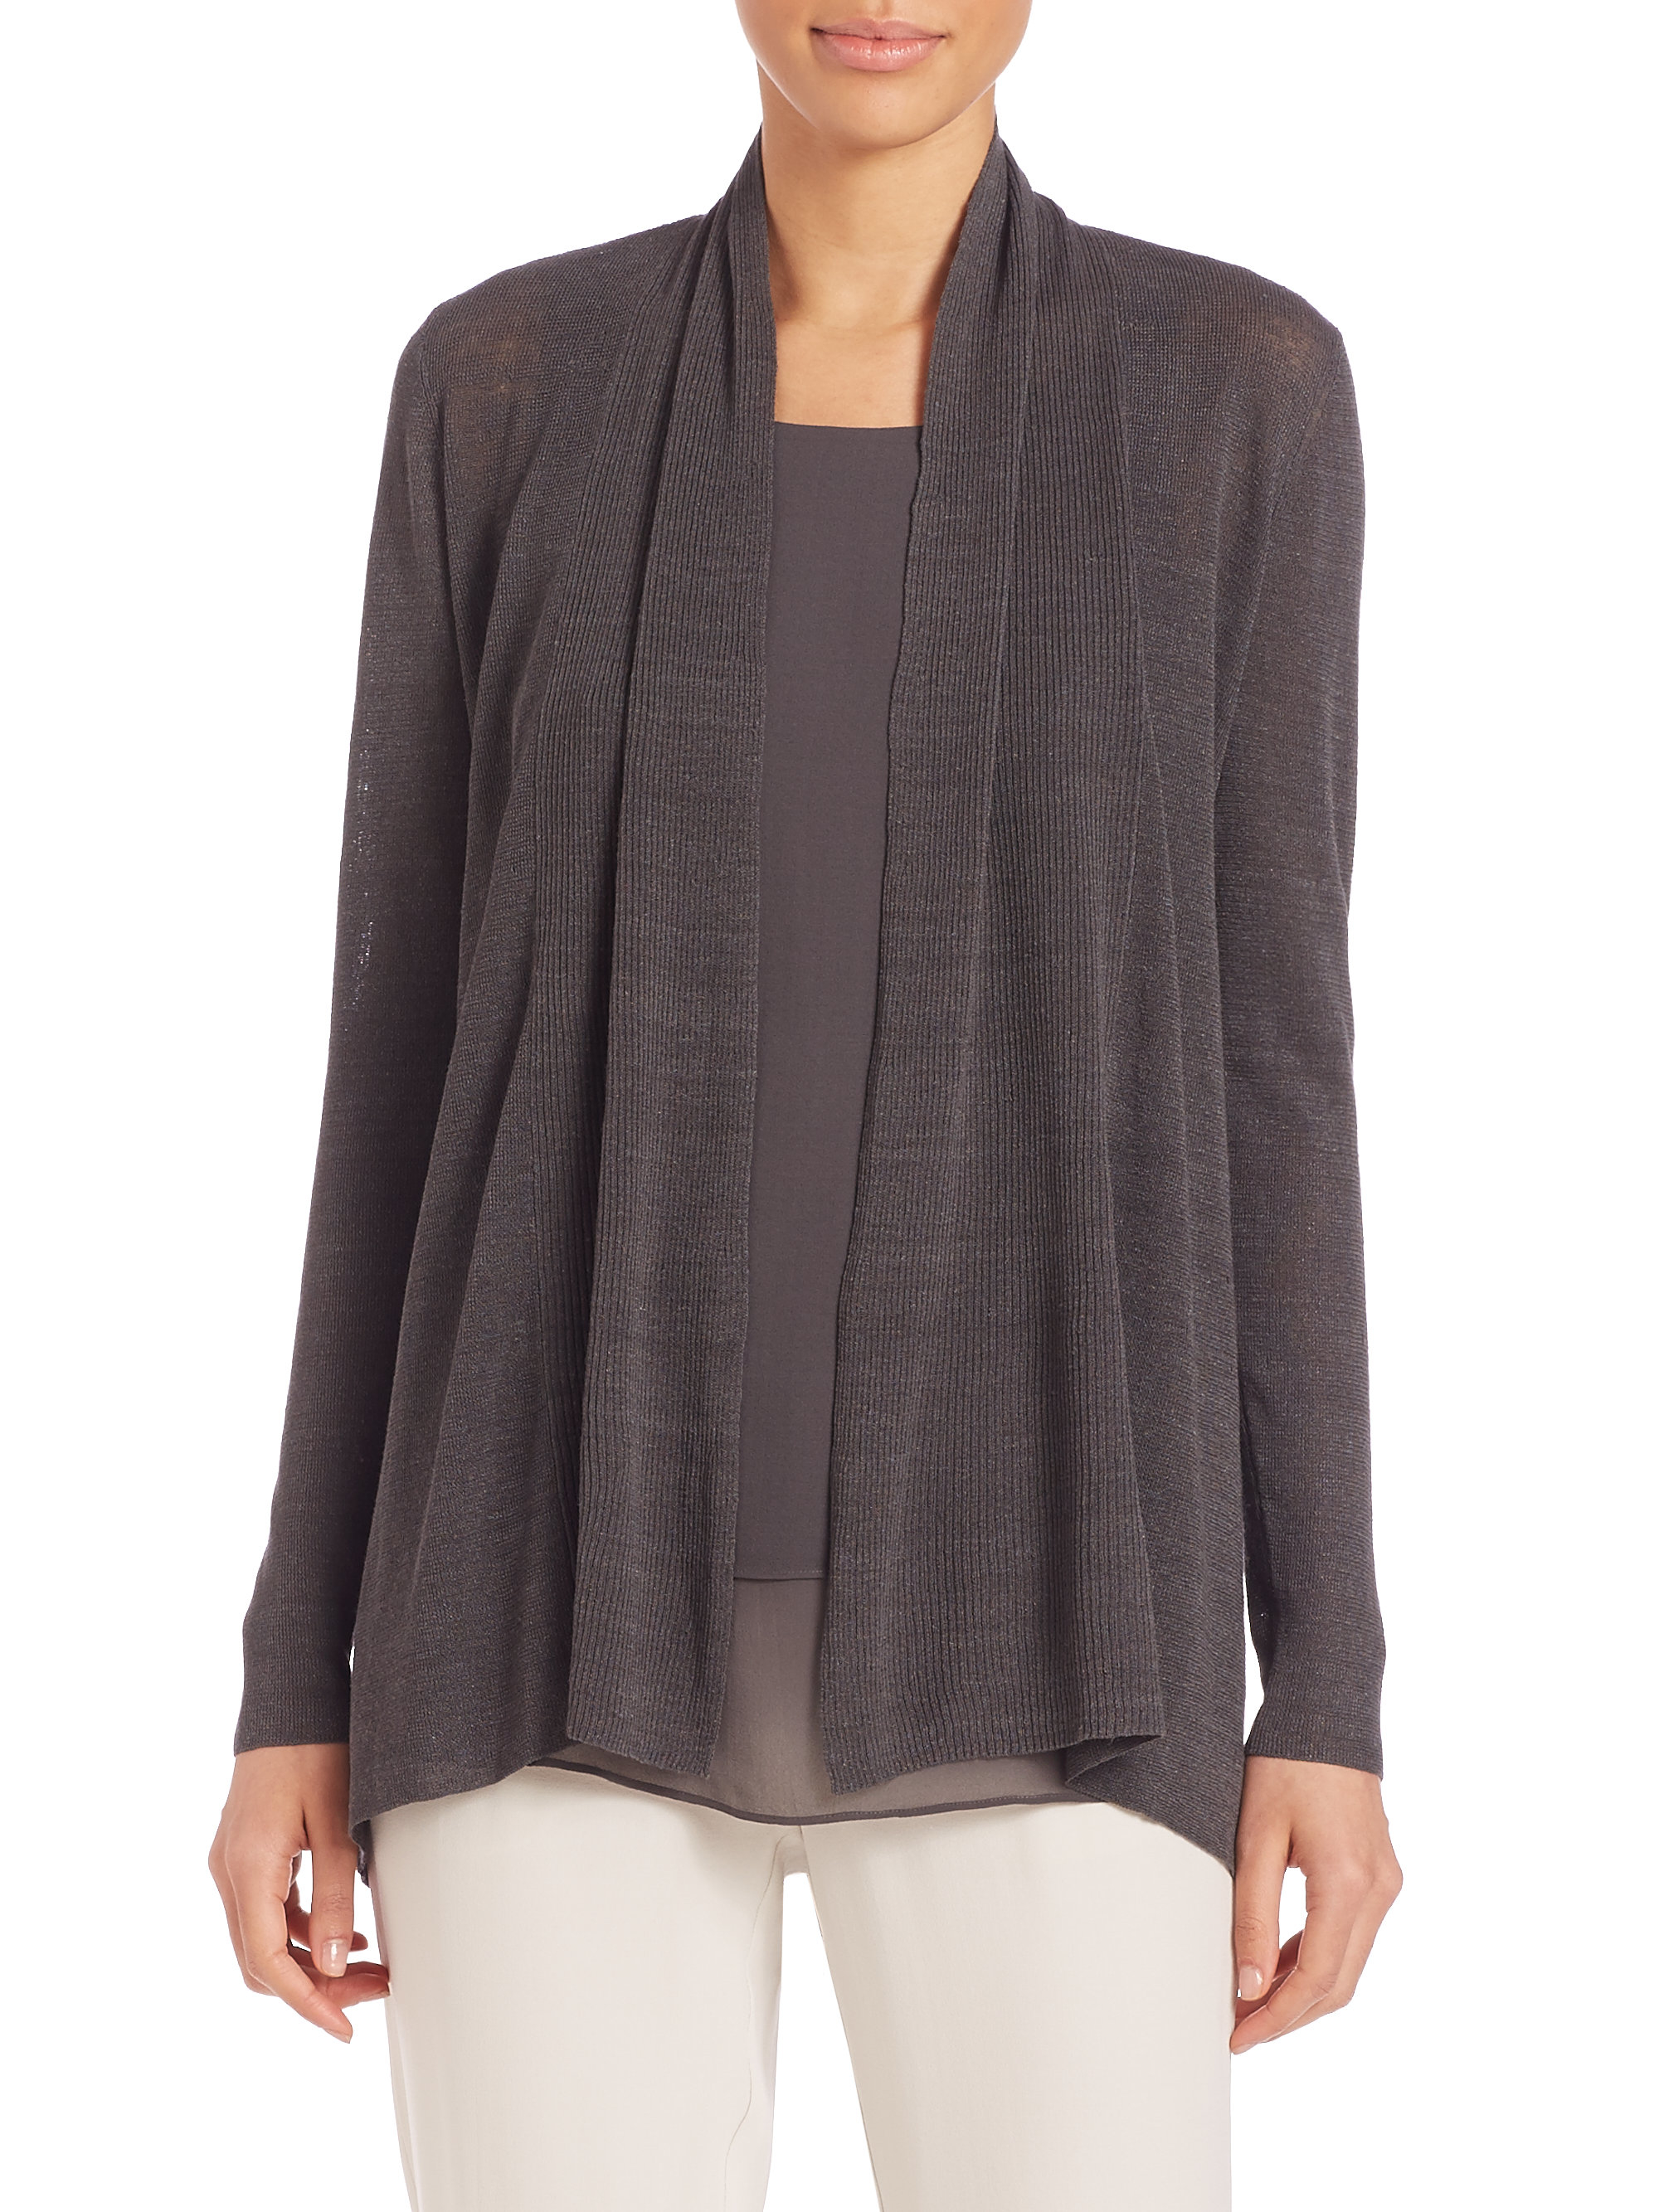 Eileen fisher Ribbed Open-front Cardigan in Brown | Lyst